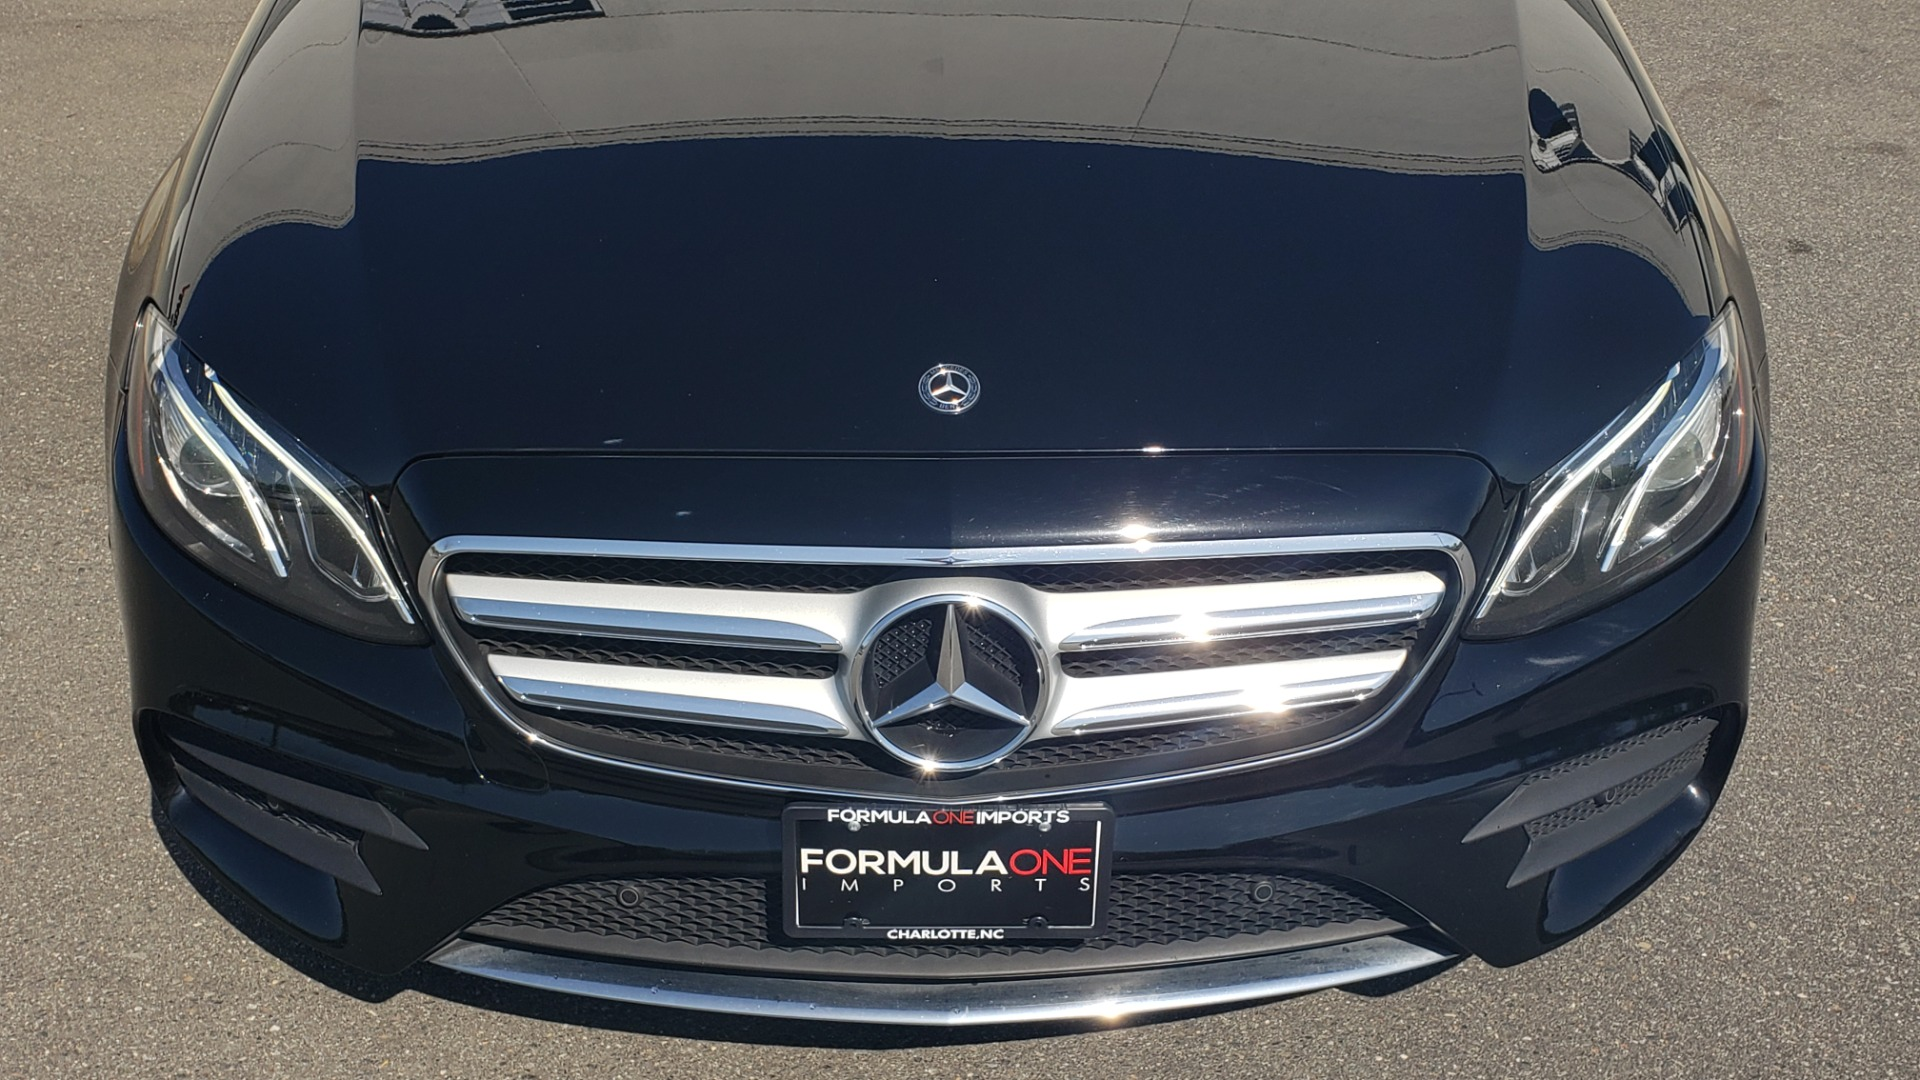 Used 2018 Mercedes-Benz E-CLASS E 300 4MATIC PREMIUM / NAV / BURMESTER SND / BSM / REARVIEW for sale $33,995 at Formula Imports in Charlotte NC 28227 26